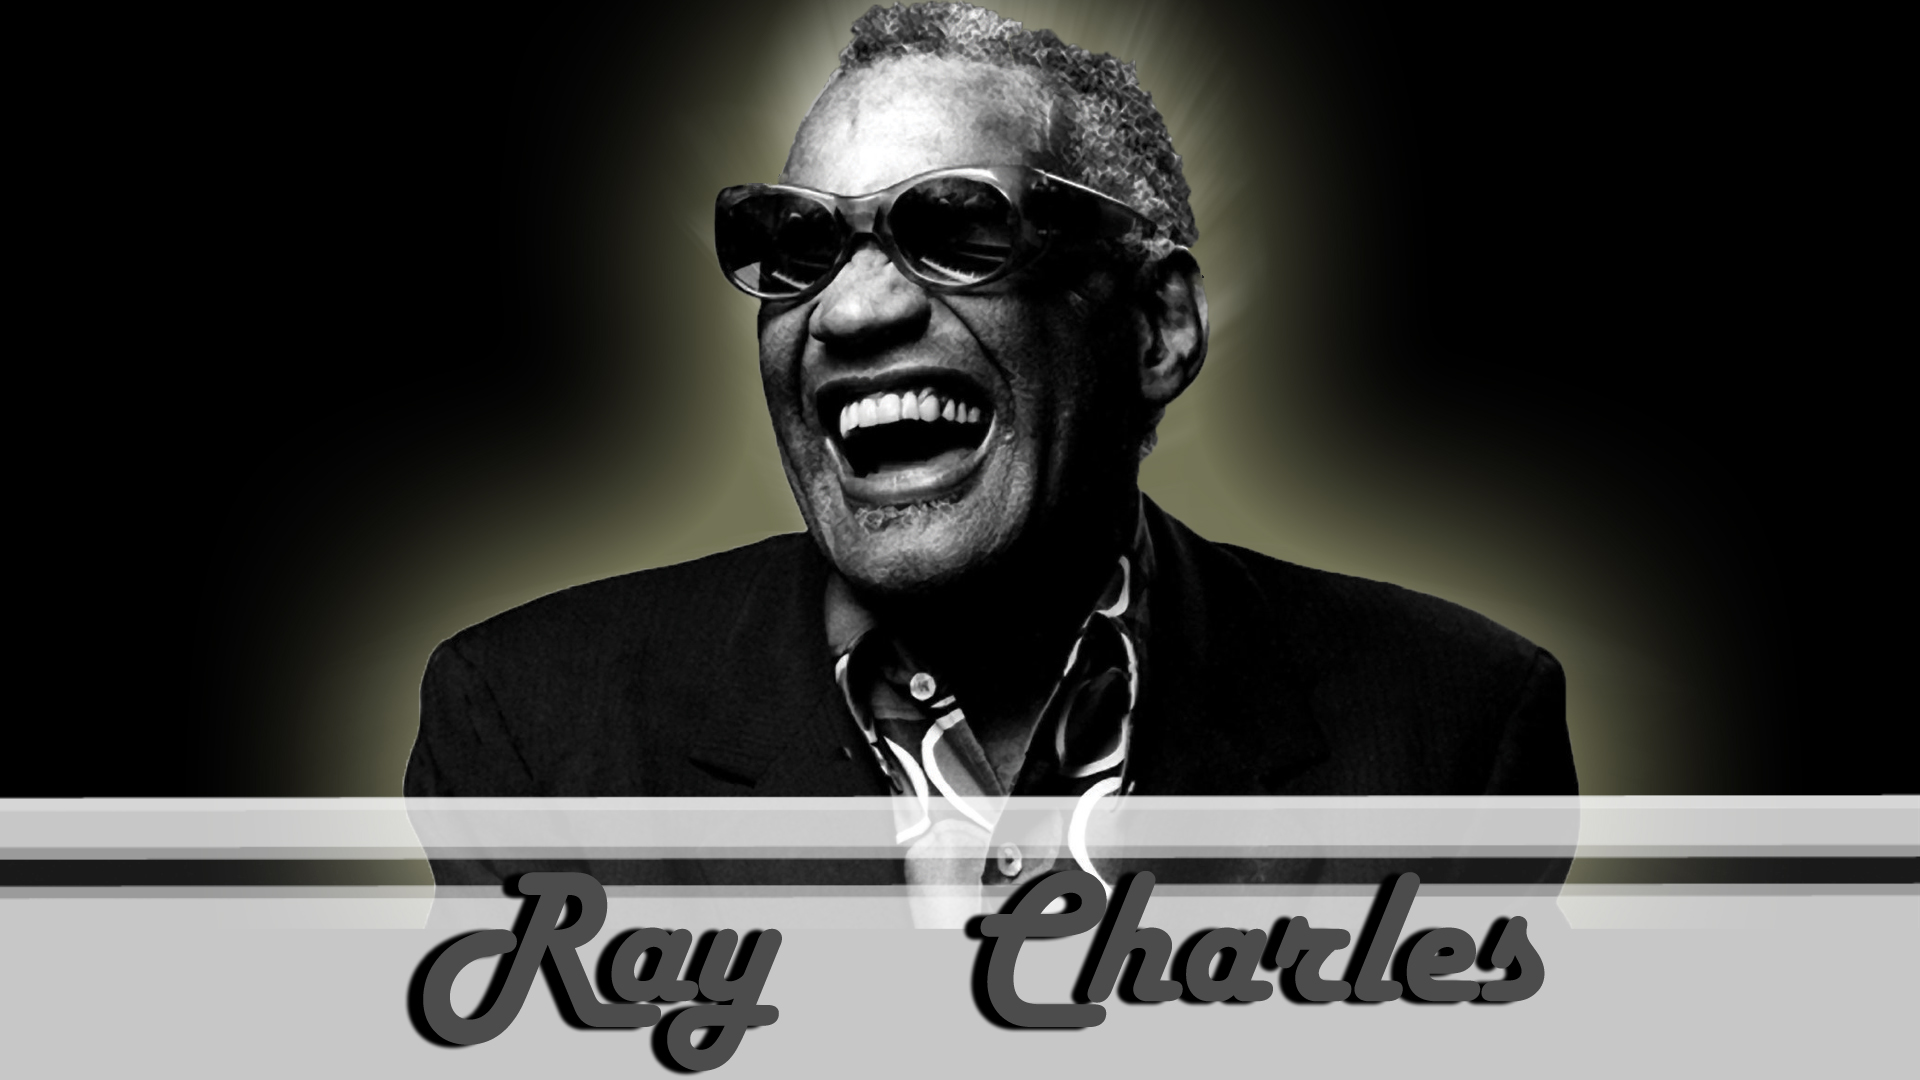 ray charles research paper Ray charles in psa for glaucoma research (1998) the ray charles video museum is a research project, documenting live performances by.